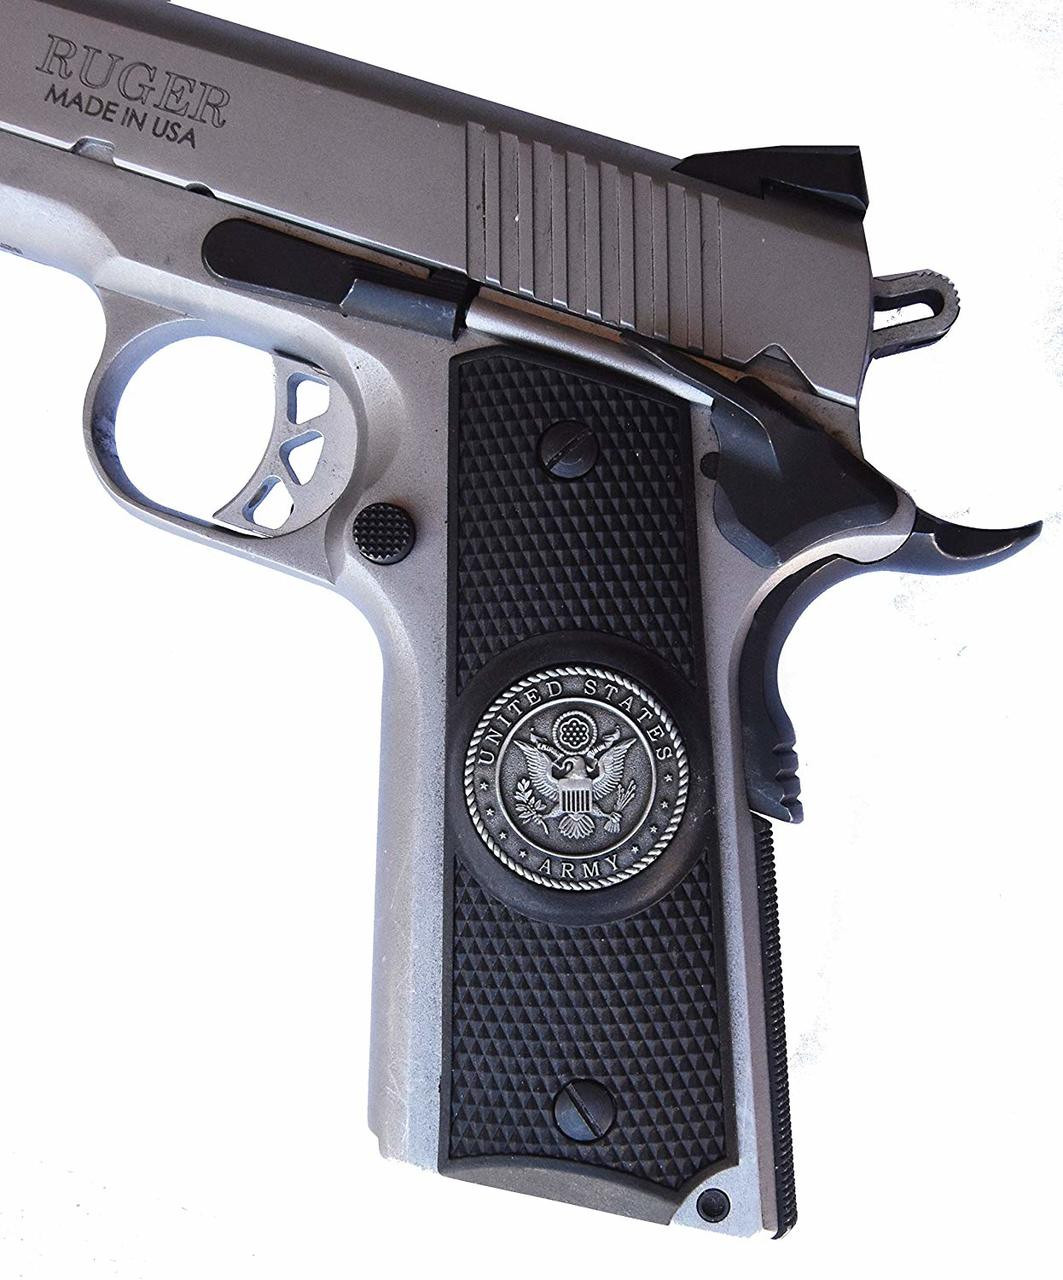 Garrison Grip 1911 Colt A1 Full Size and Clones (Grips Only) with US Army Pewter Medallion Set in Solid High Grade Ebony Black Colored ABS